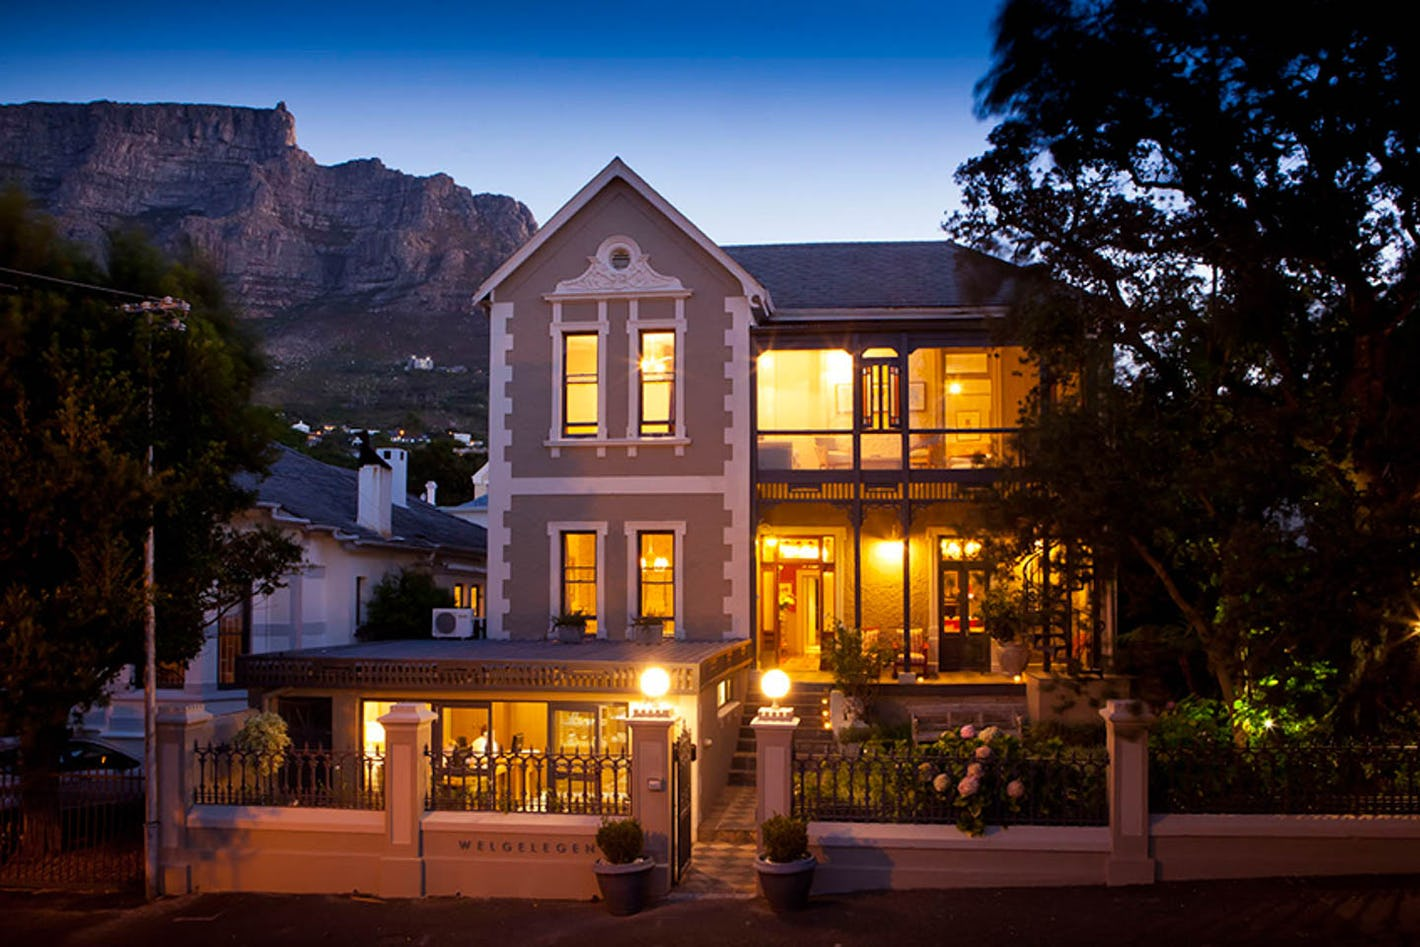 Welgelegen is a stylish guest house on the slopes of Table Mountain in the  heart of